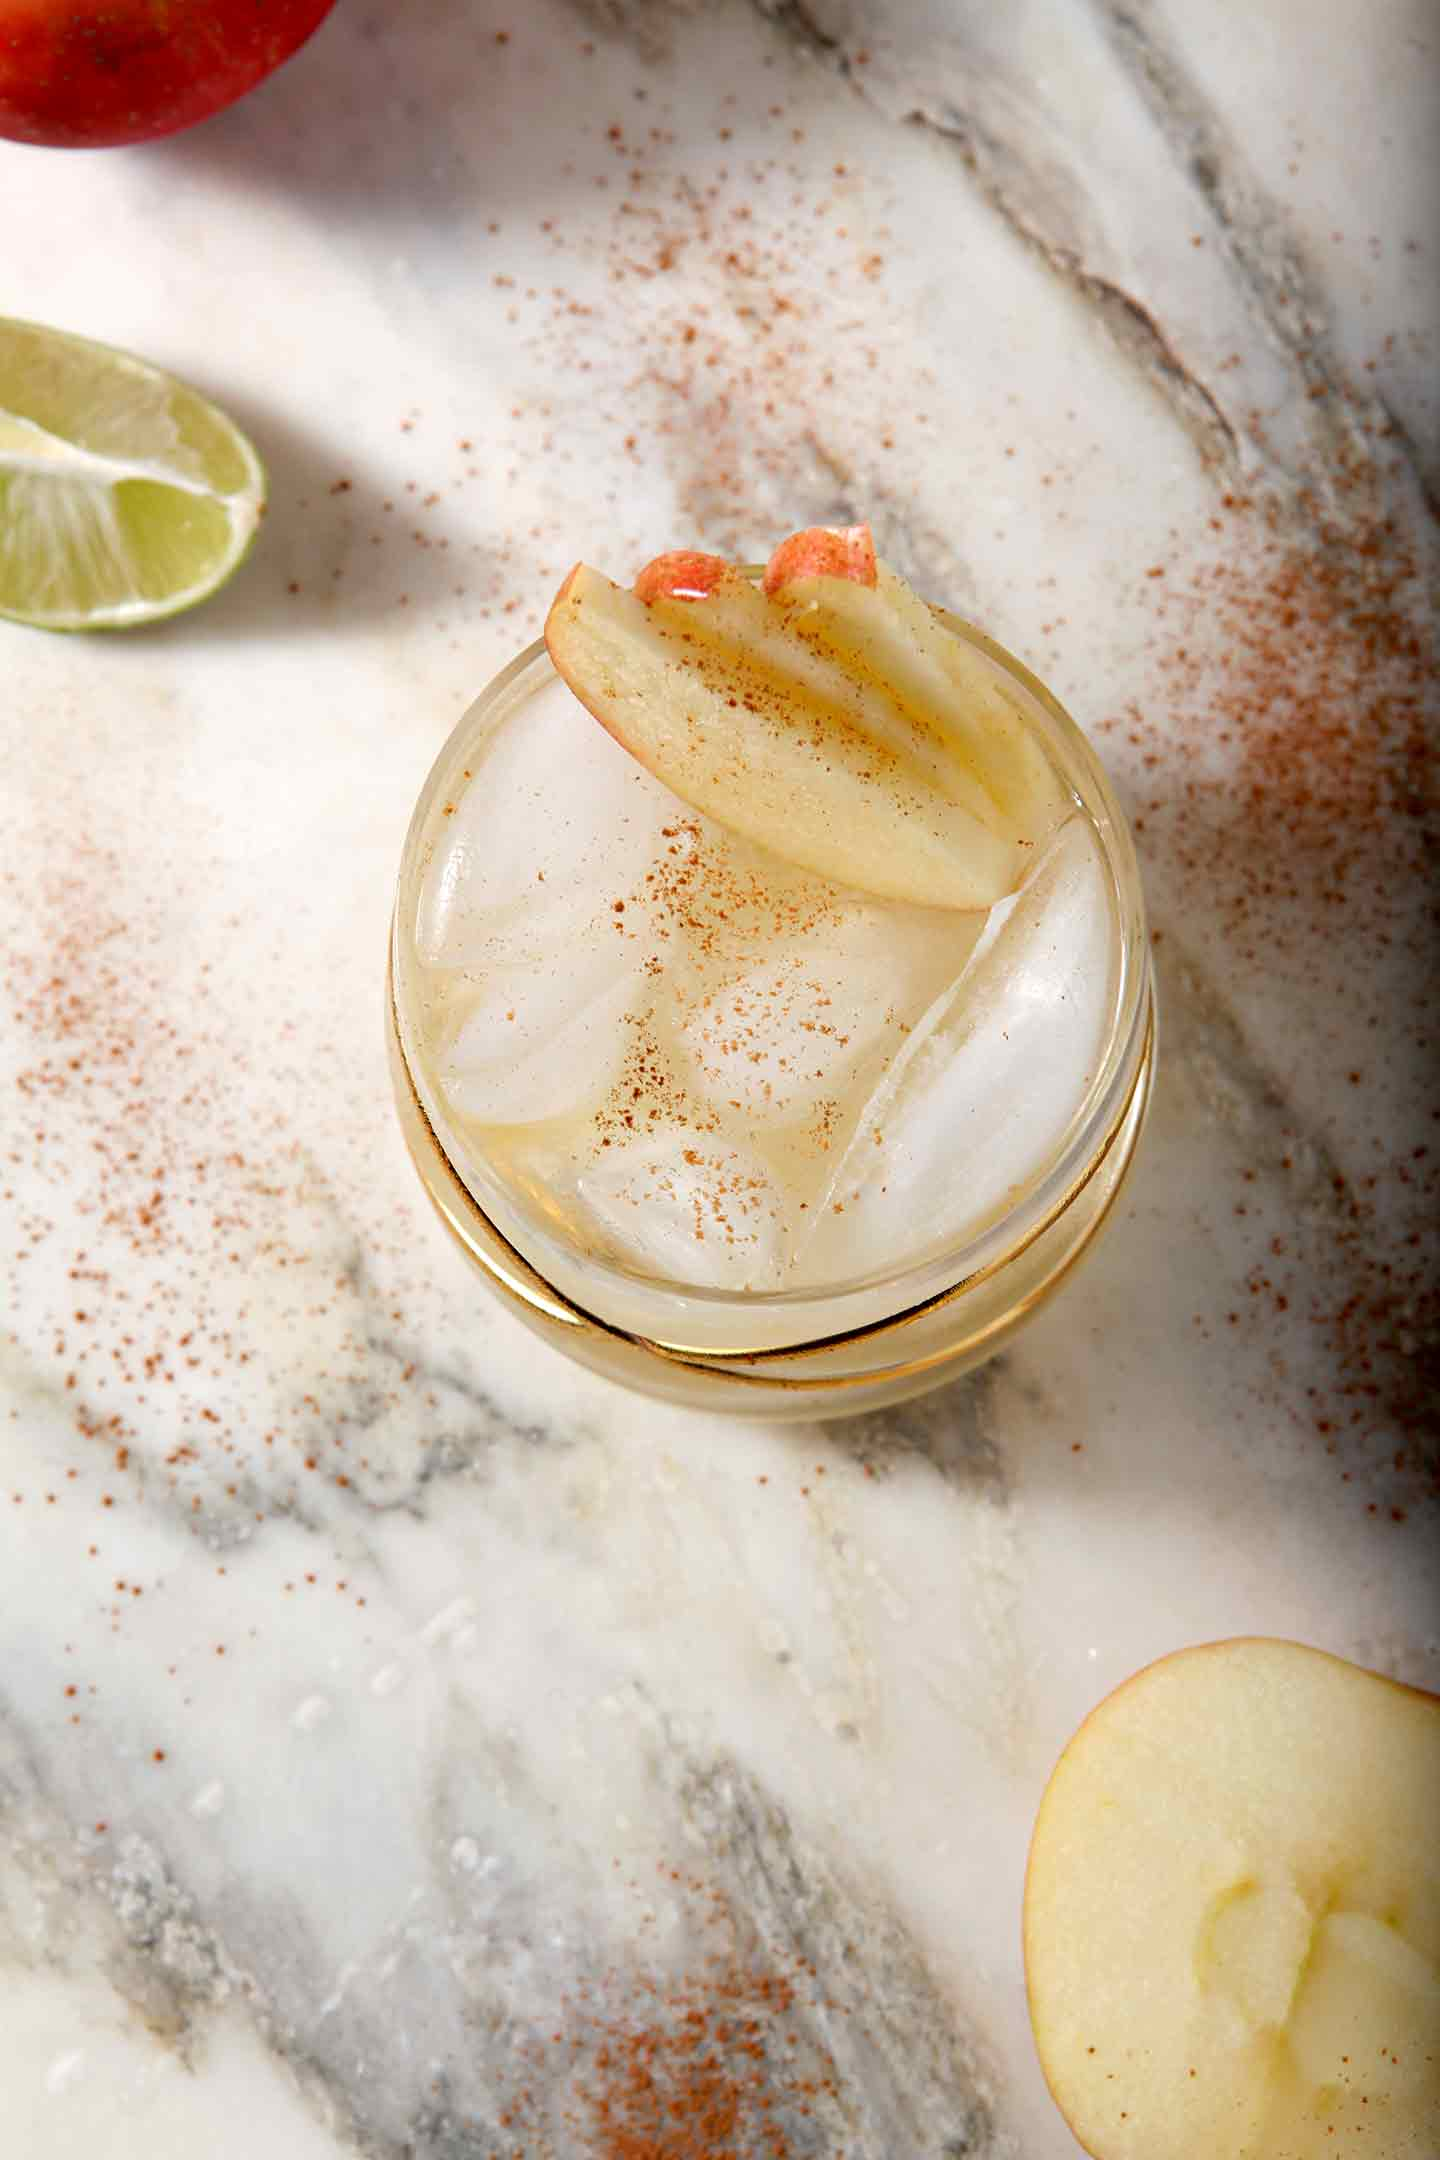 Overhead image of a Apple Pie Moscow Mule, shown with apples and lime slices